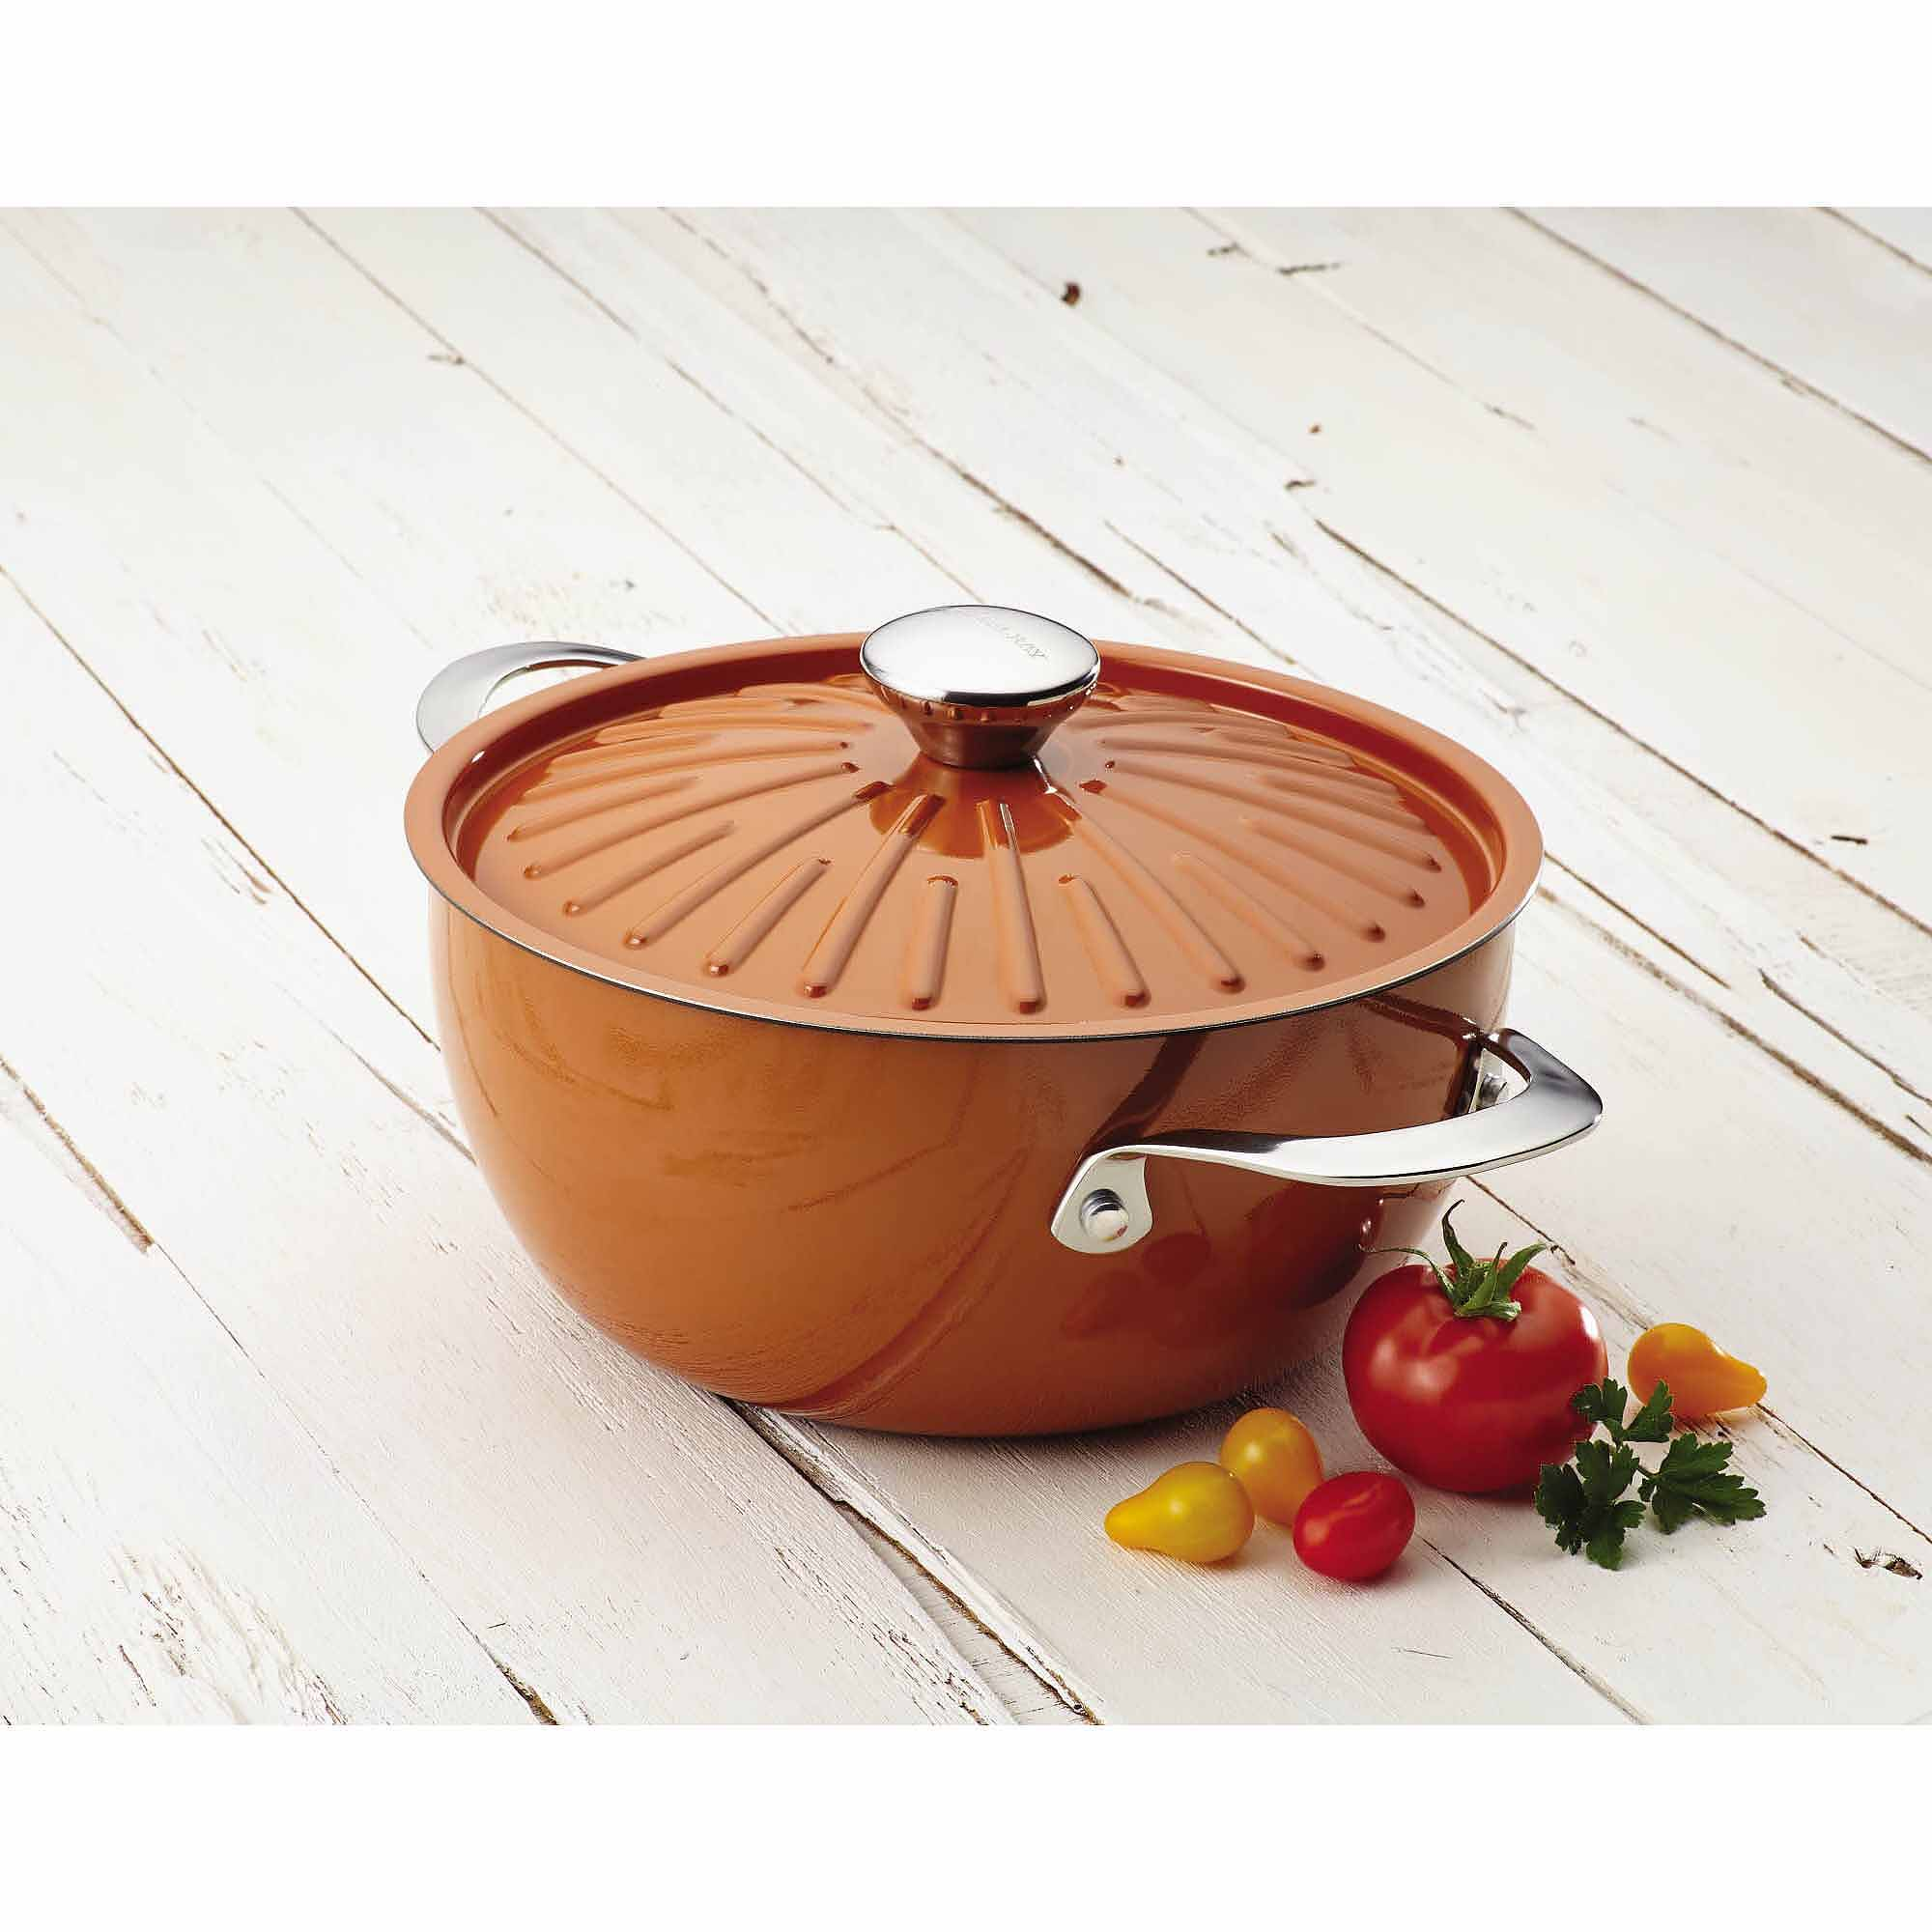 Rachael Ray Cucina Oven-To-Table Hard Enamel Nonstick 4.5-Qt Covered Round Casserole